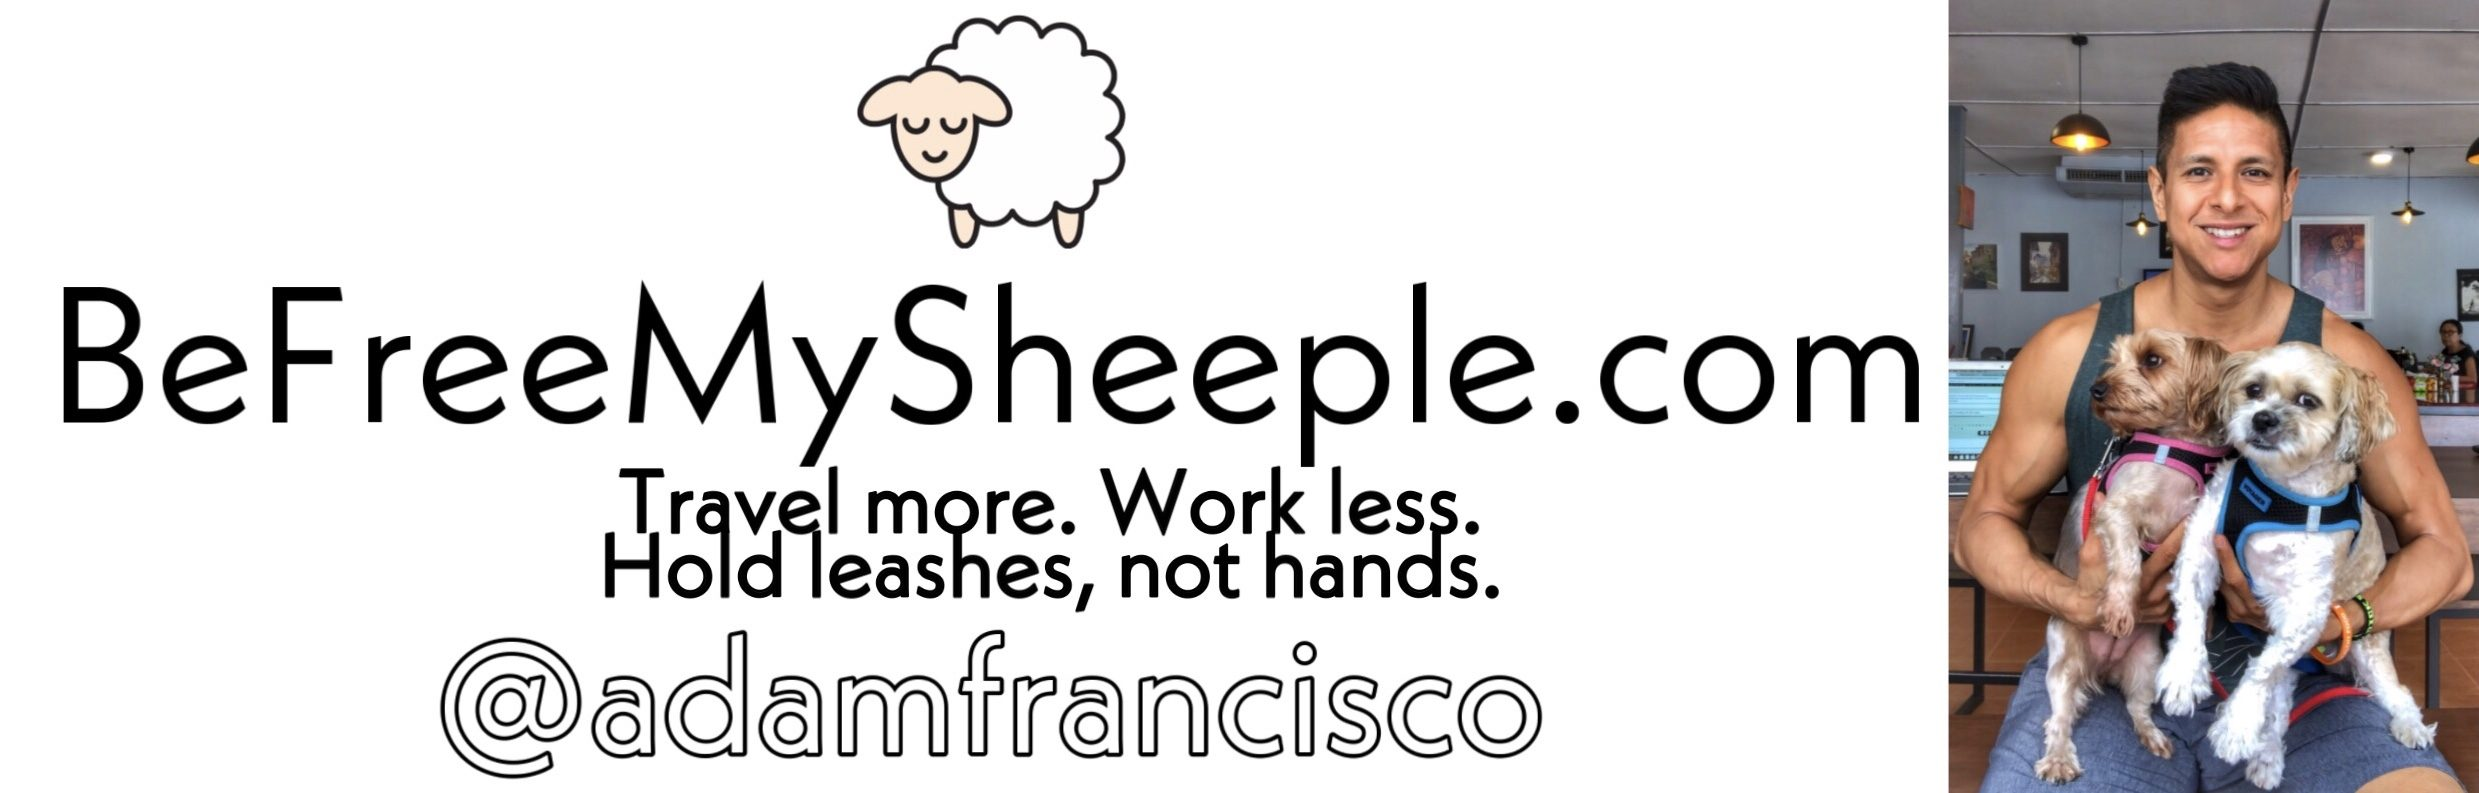 BeFreeMySheeple by AdamFrancisco